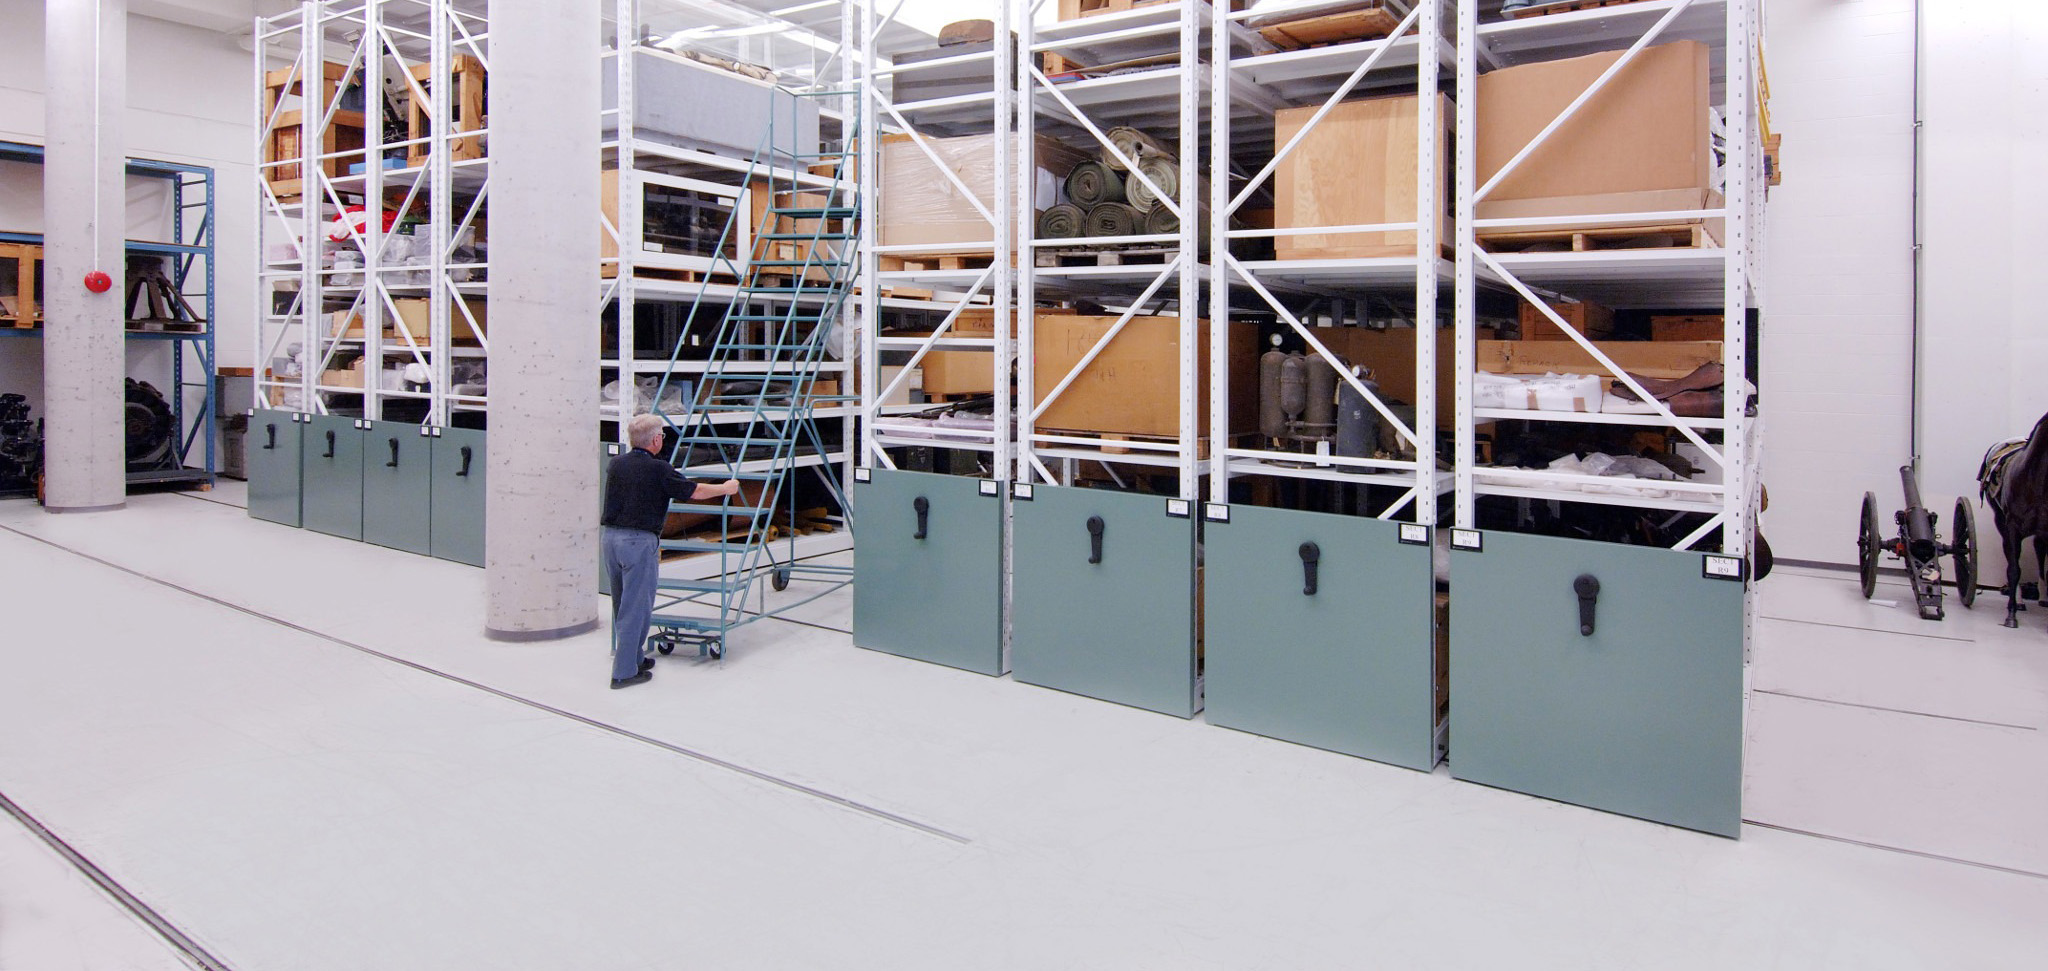 Wide span shelving on mechanical assist mobile for museum archival storage